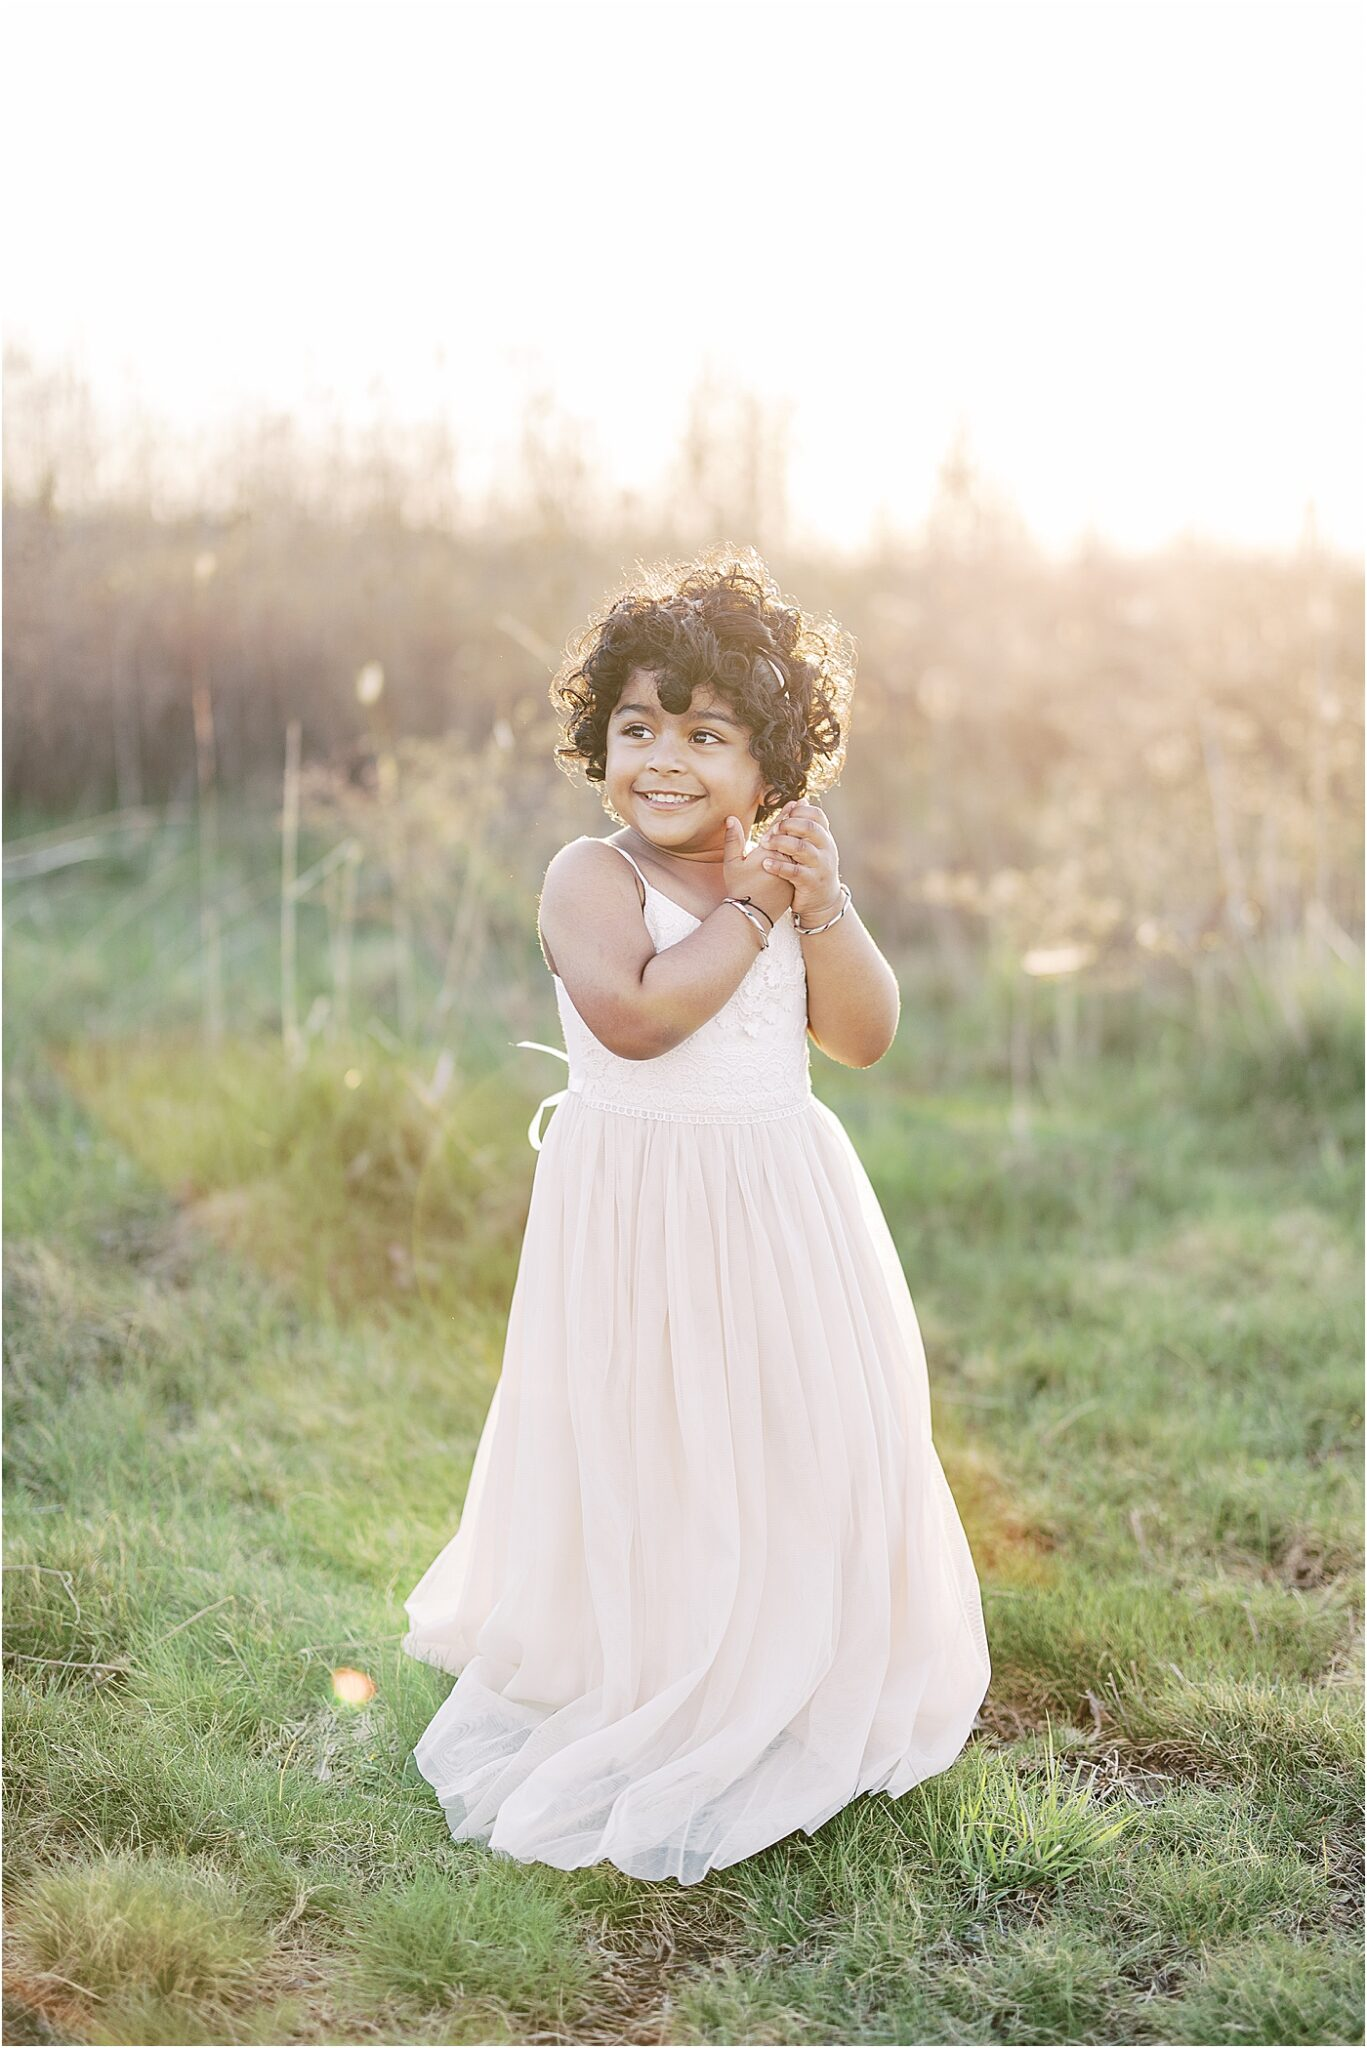 Young toddler girl in a beautiful dress during sunset. Photo by Lindsay Konopa Photography, natural light photographer in Indy.